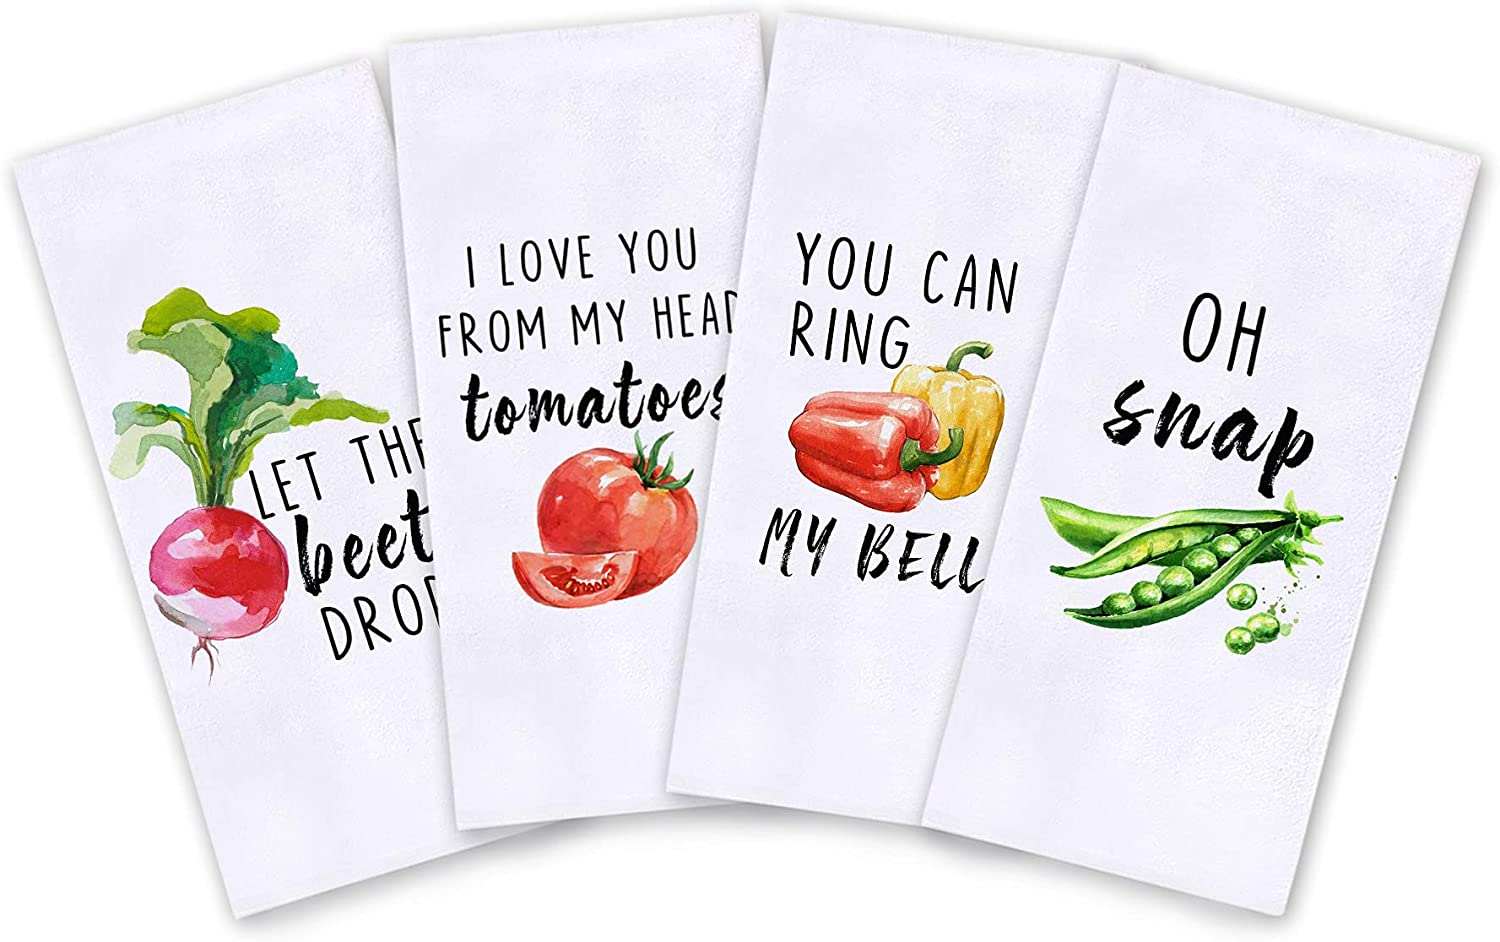 Funny Vegetables Kitchen Towels 18×28 Inch Beet/Tomatoes/Bell Pepper/Snap Peas Set of 4 Kitchen Dish Towels Absorbent Dishcloths with Fun Saying for Kitchen Decor,Housewarming Gifts